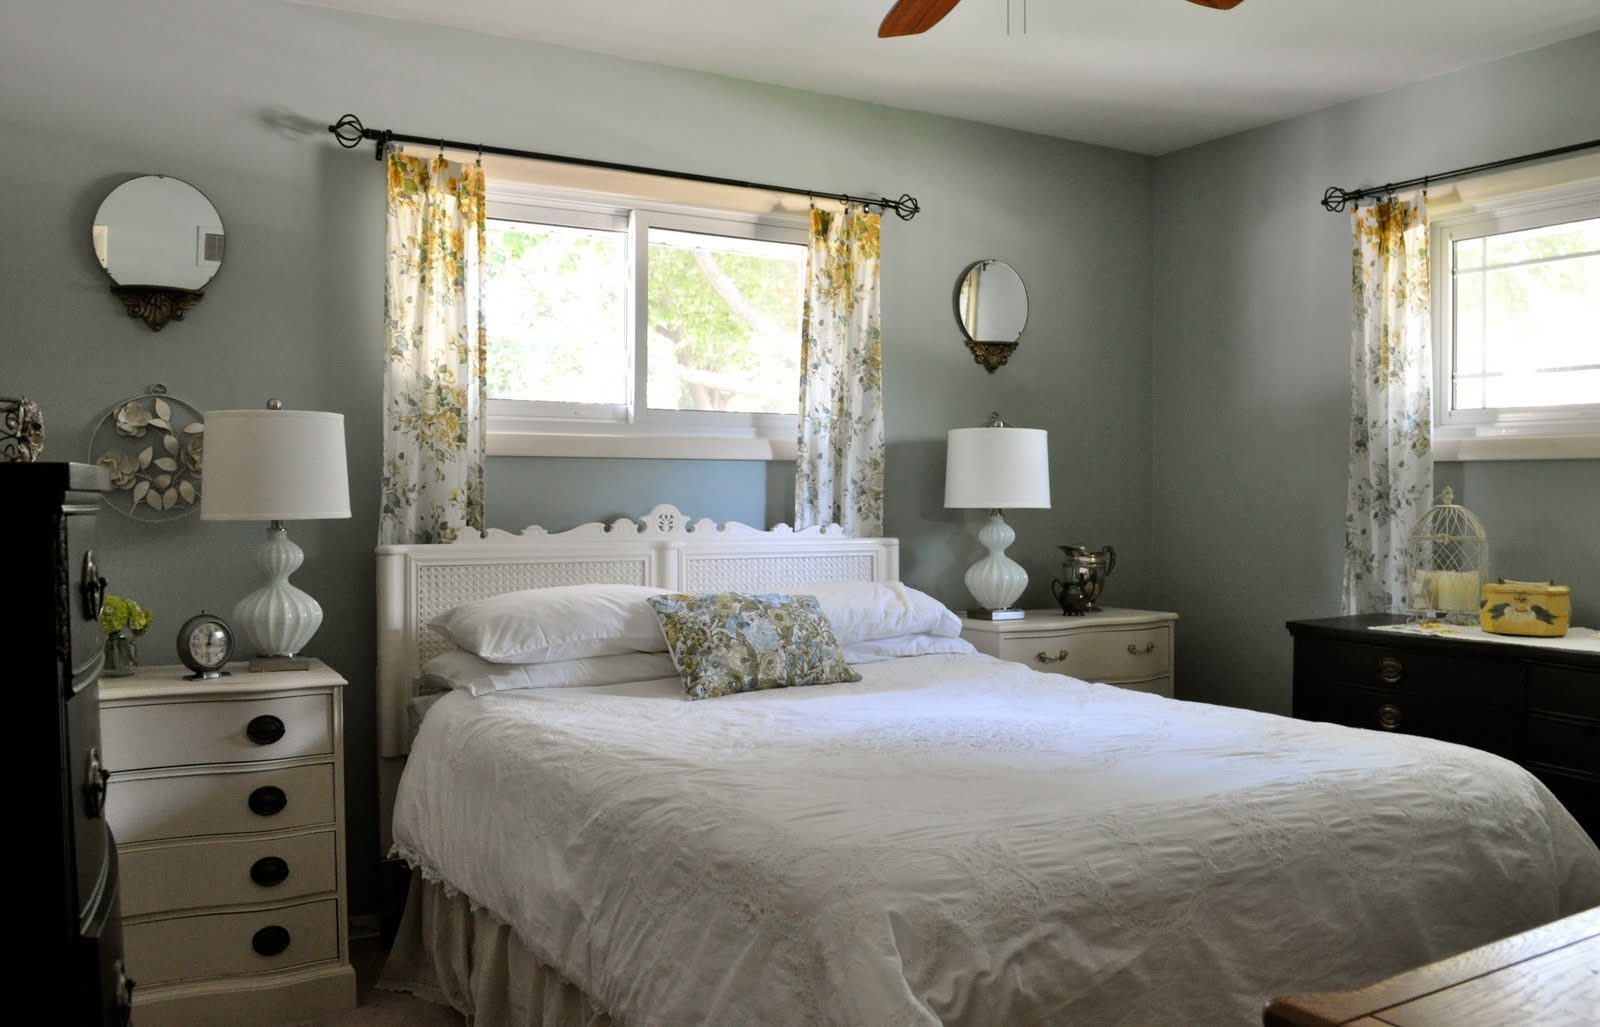 Bedroom Makeover Blog: An Oldie But Goodie Bedroom Makeover.....